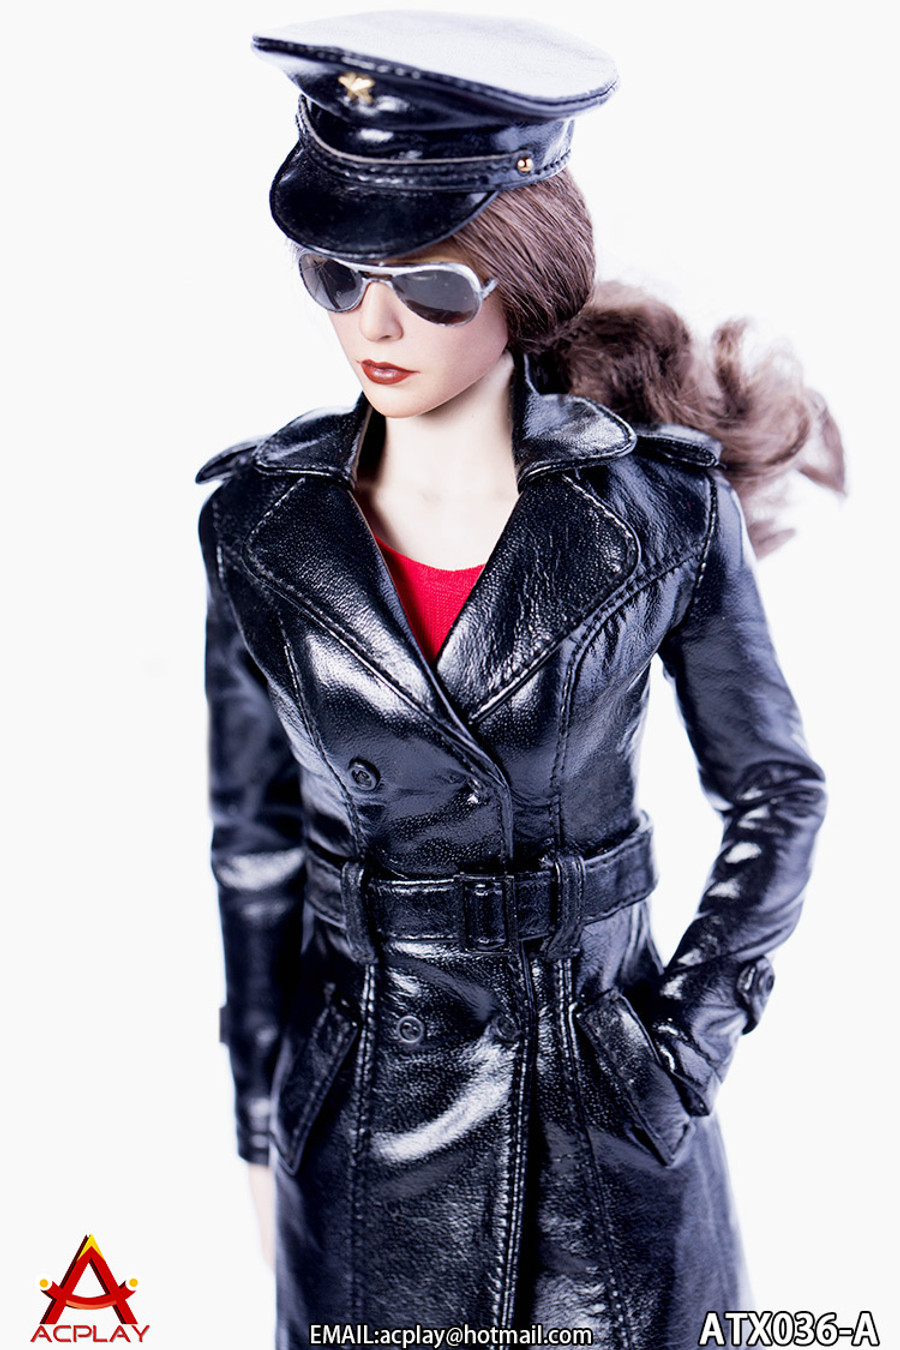 AC Play - The Queen Style Leather Suit